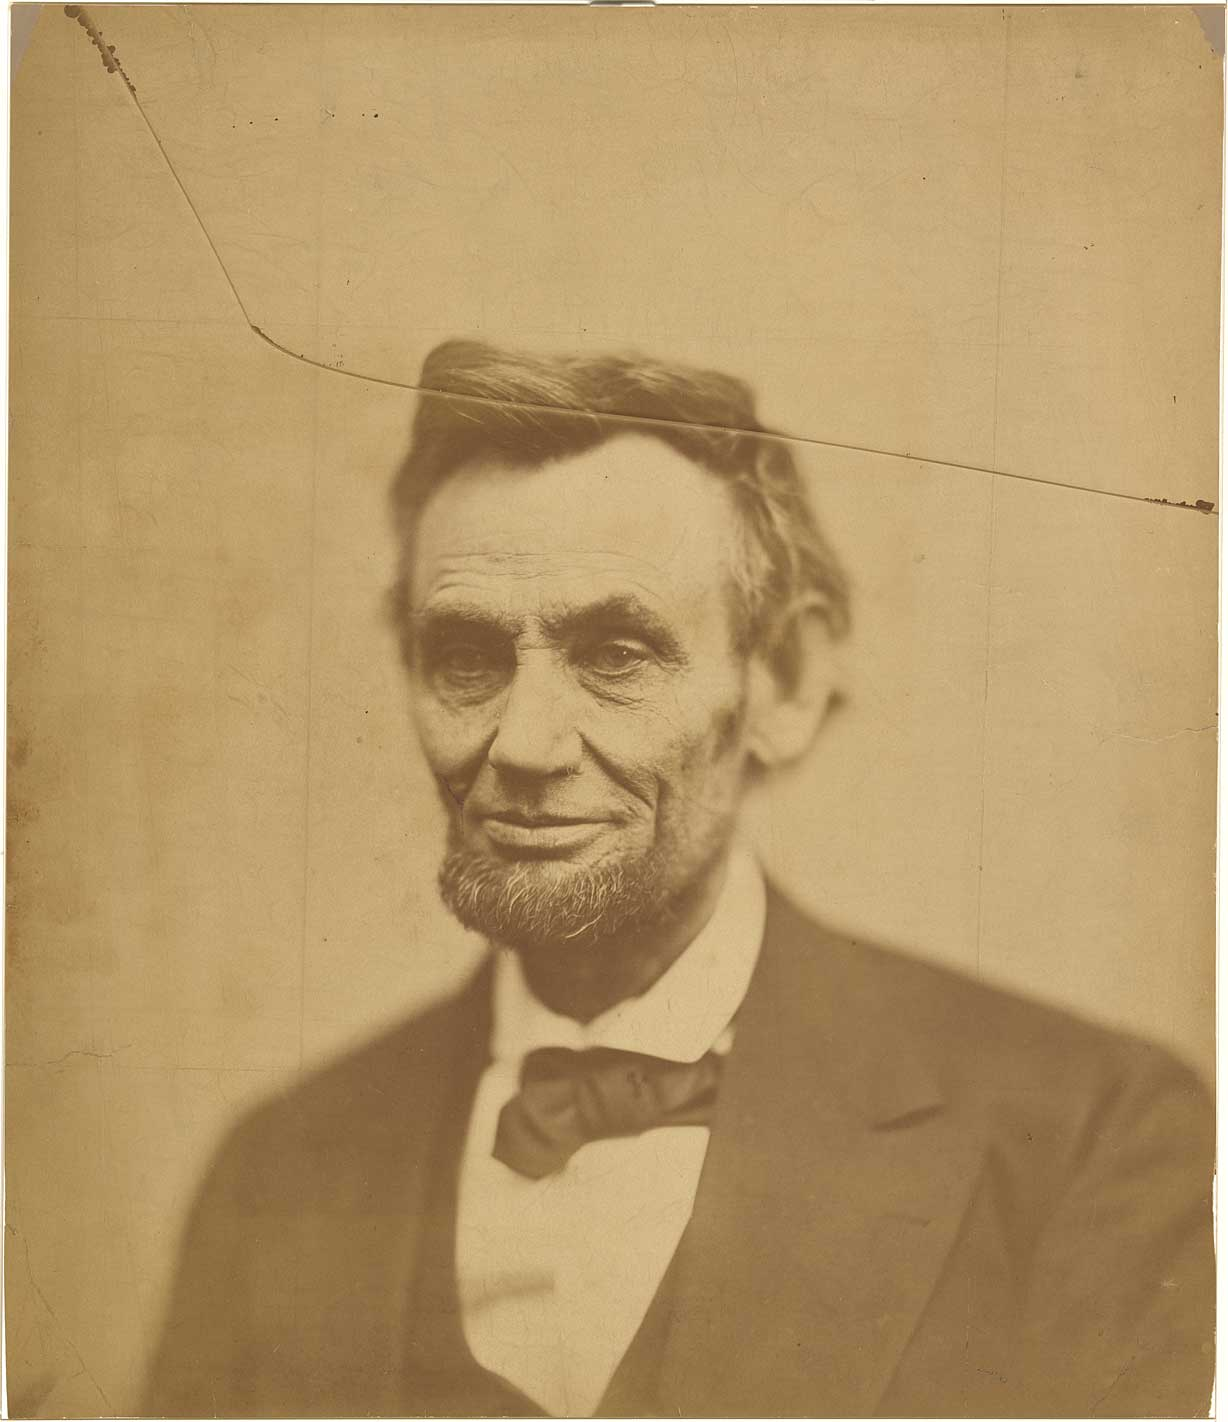 Photograph of a man with a line going through the top of his head